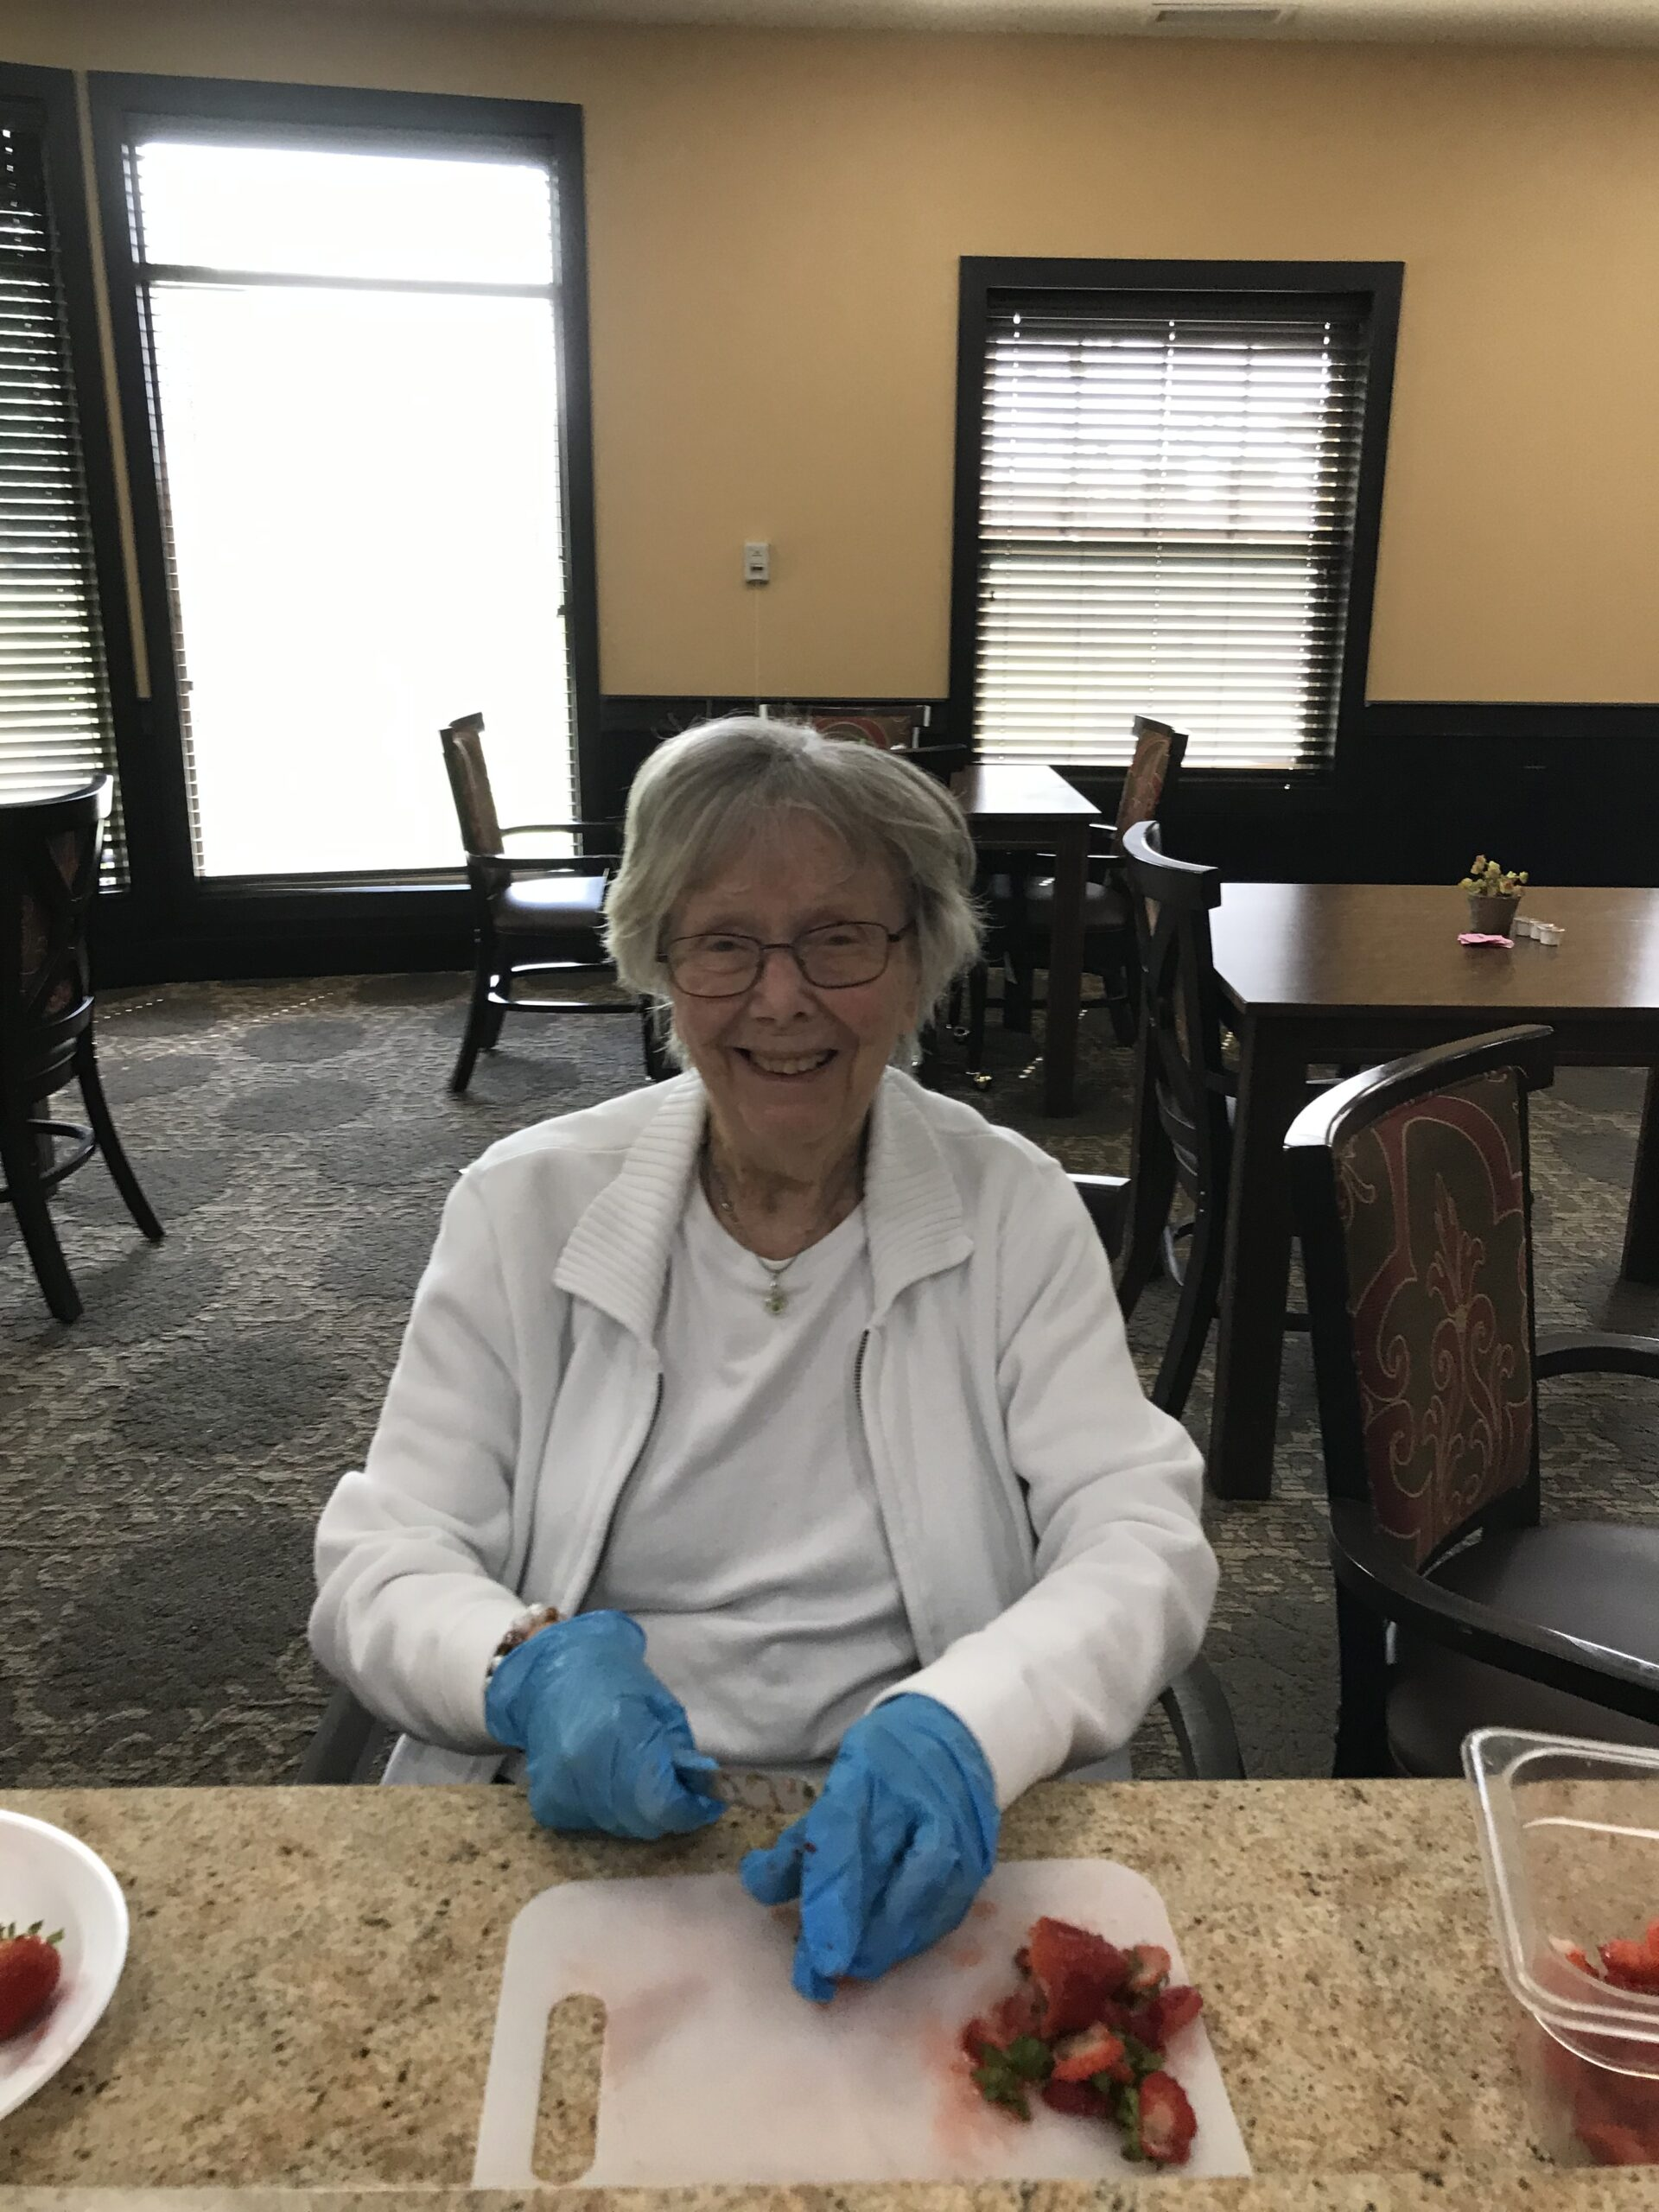 Norma helping cut up strawberries for ice cream sundaes